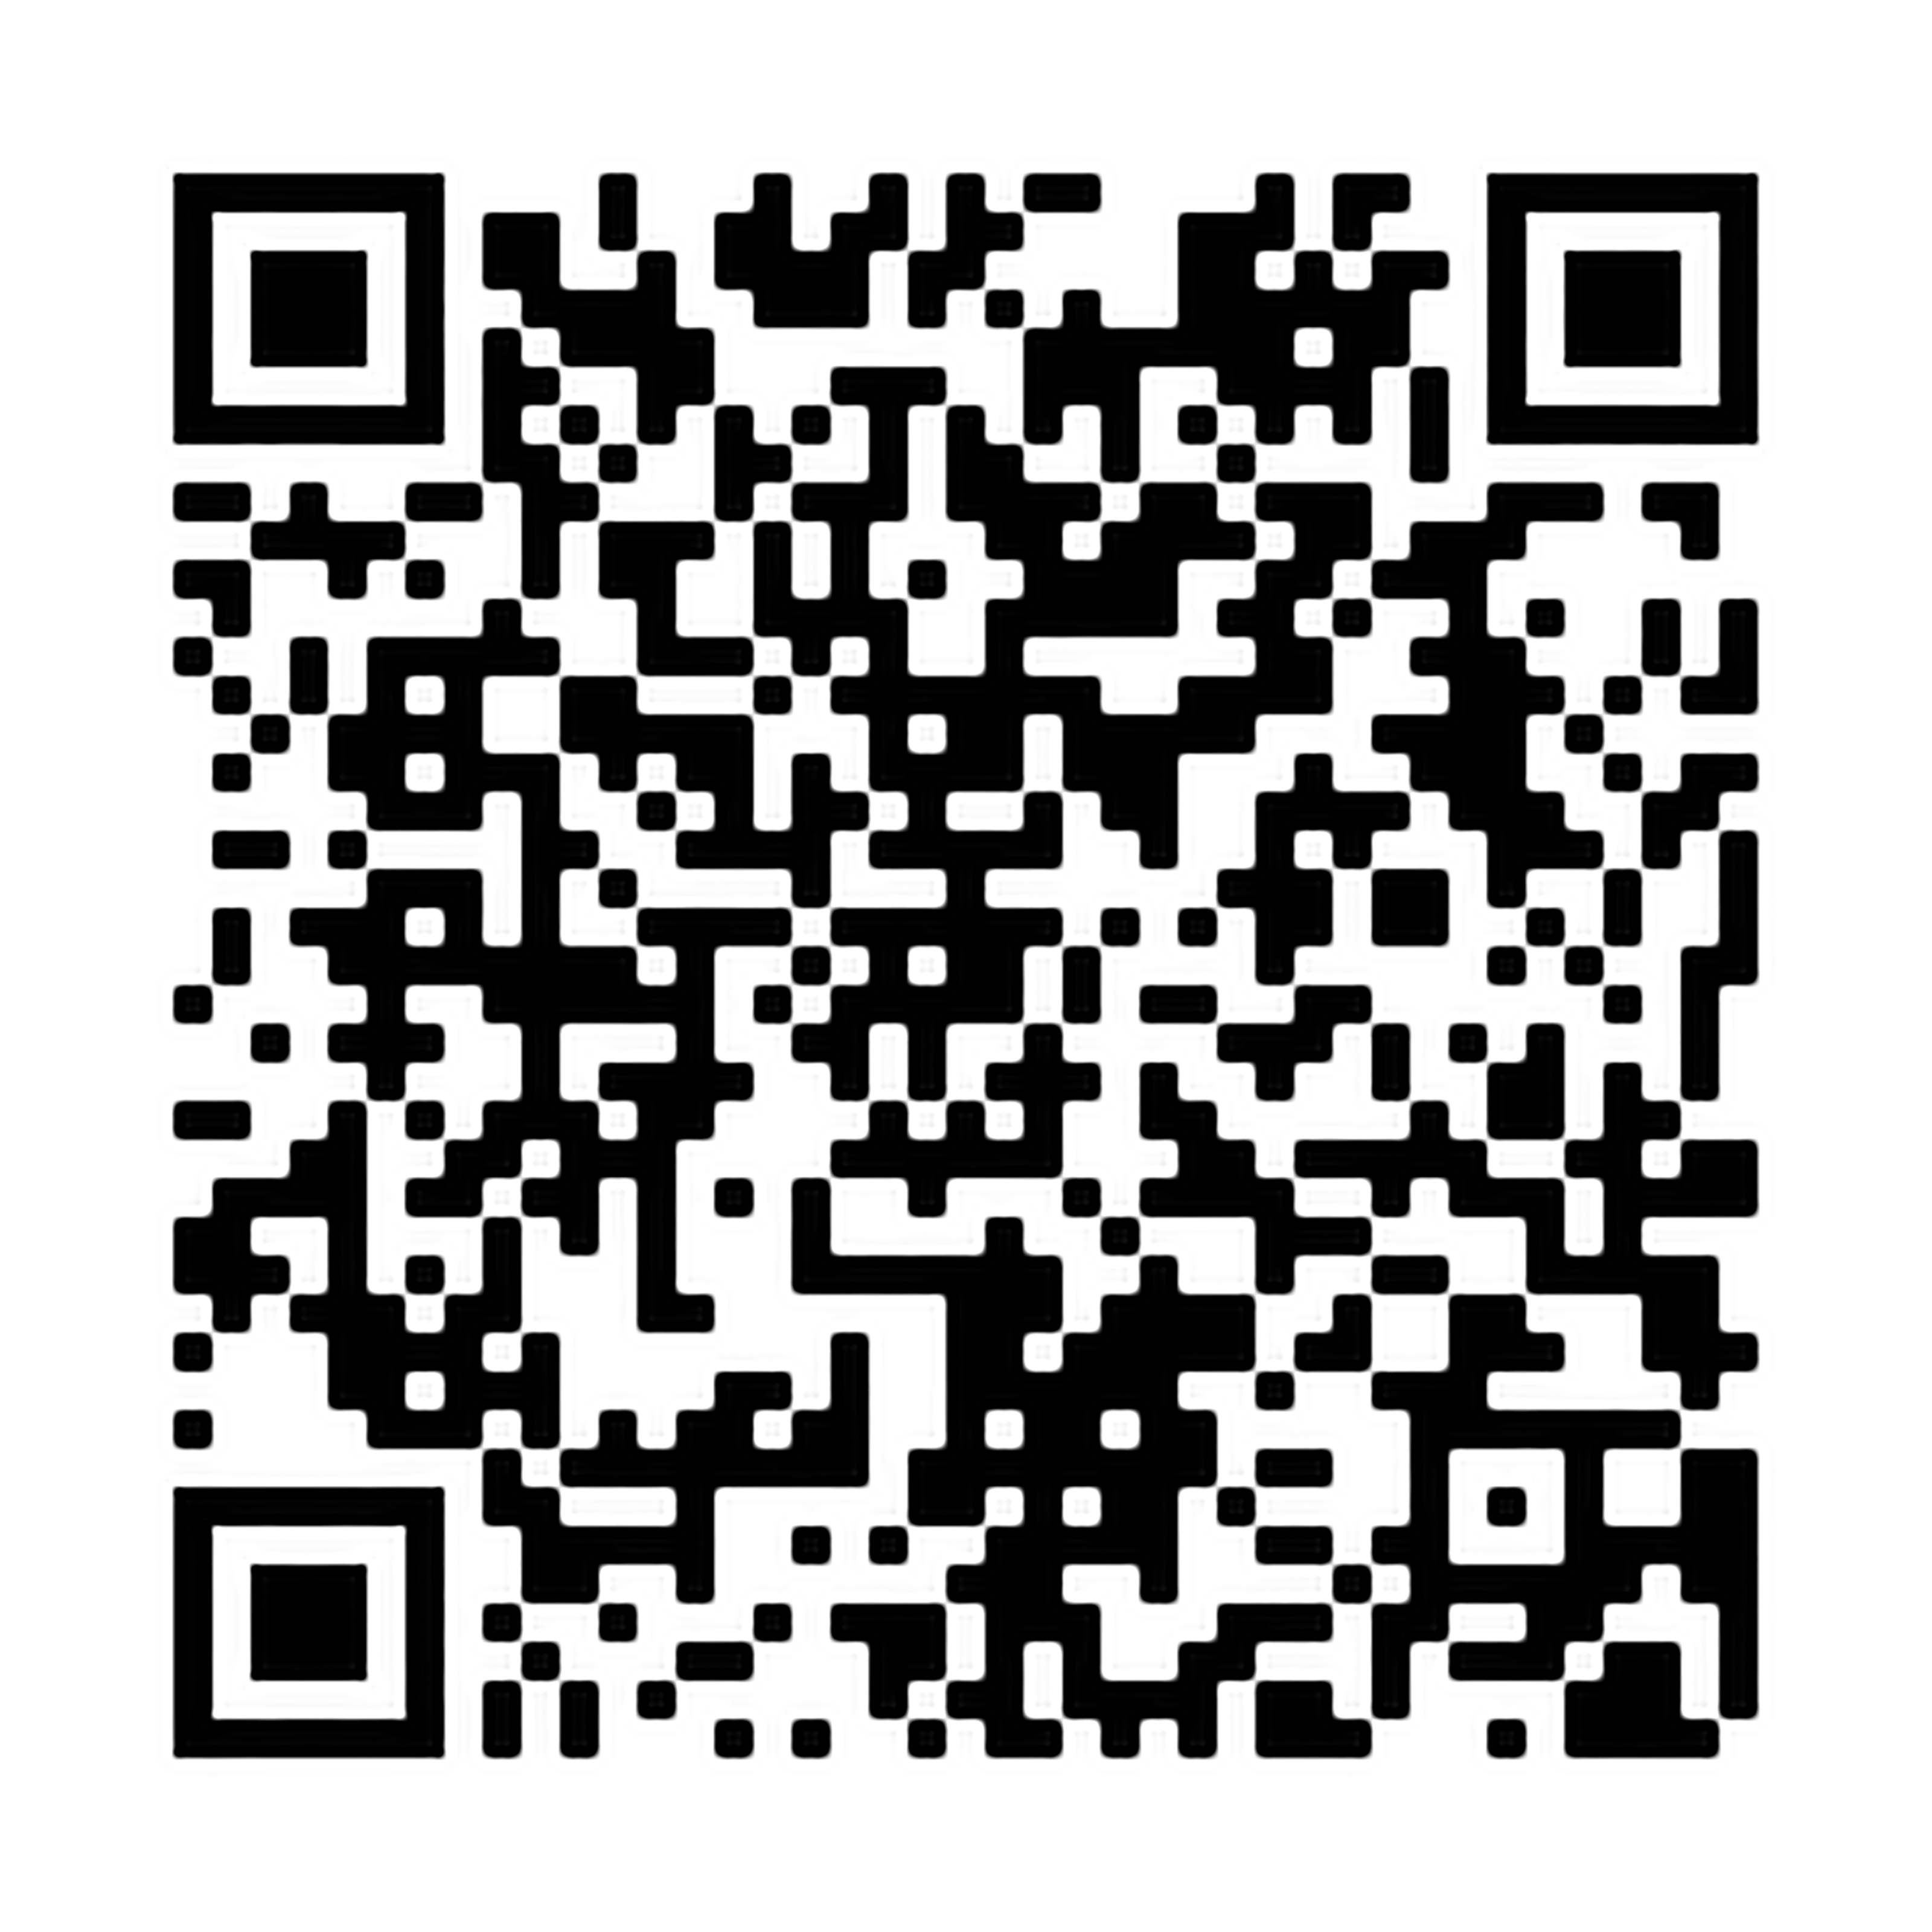 COVID Entry Form QR Code (5/2021)